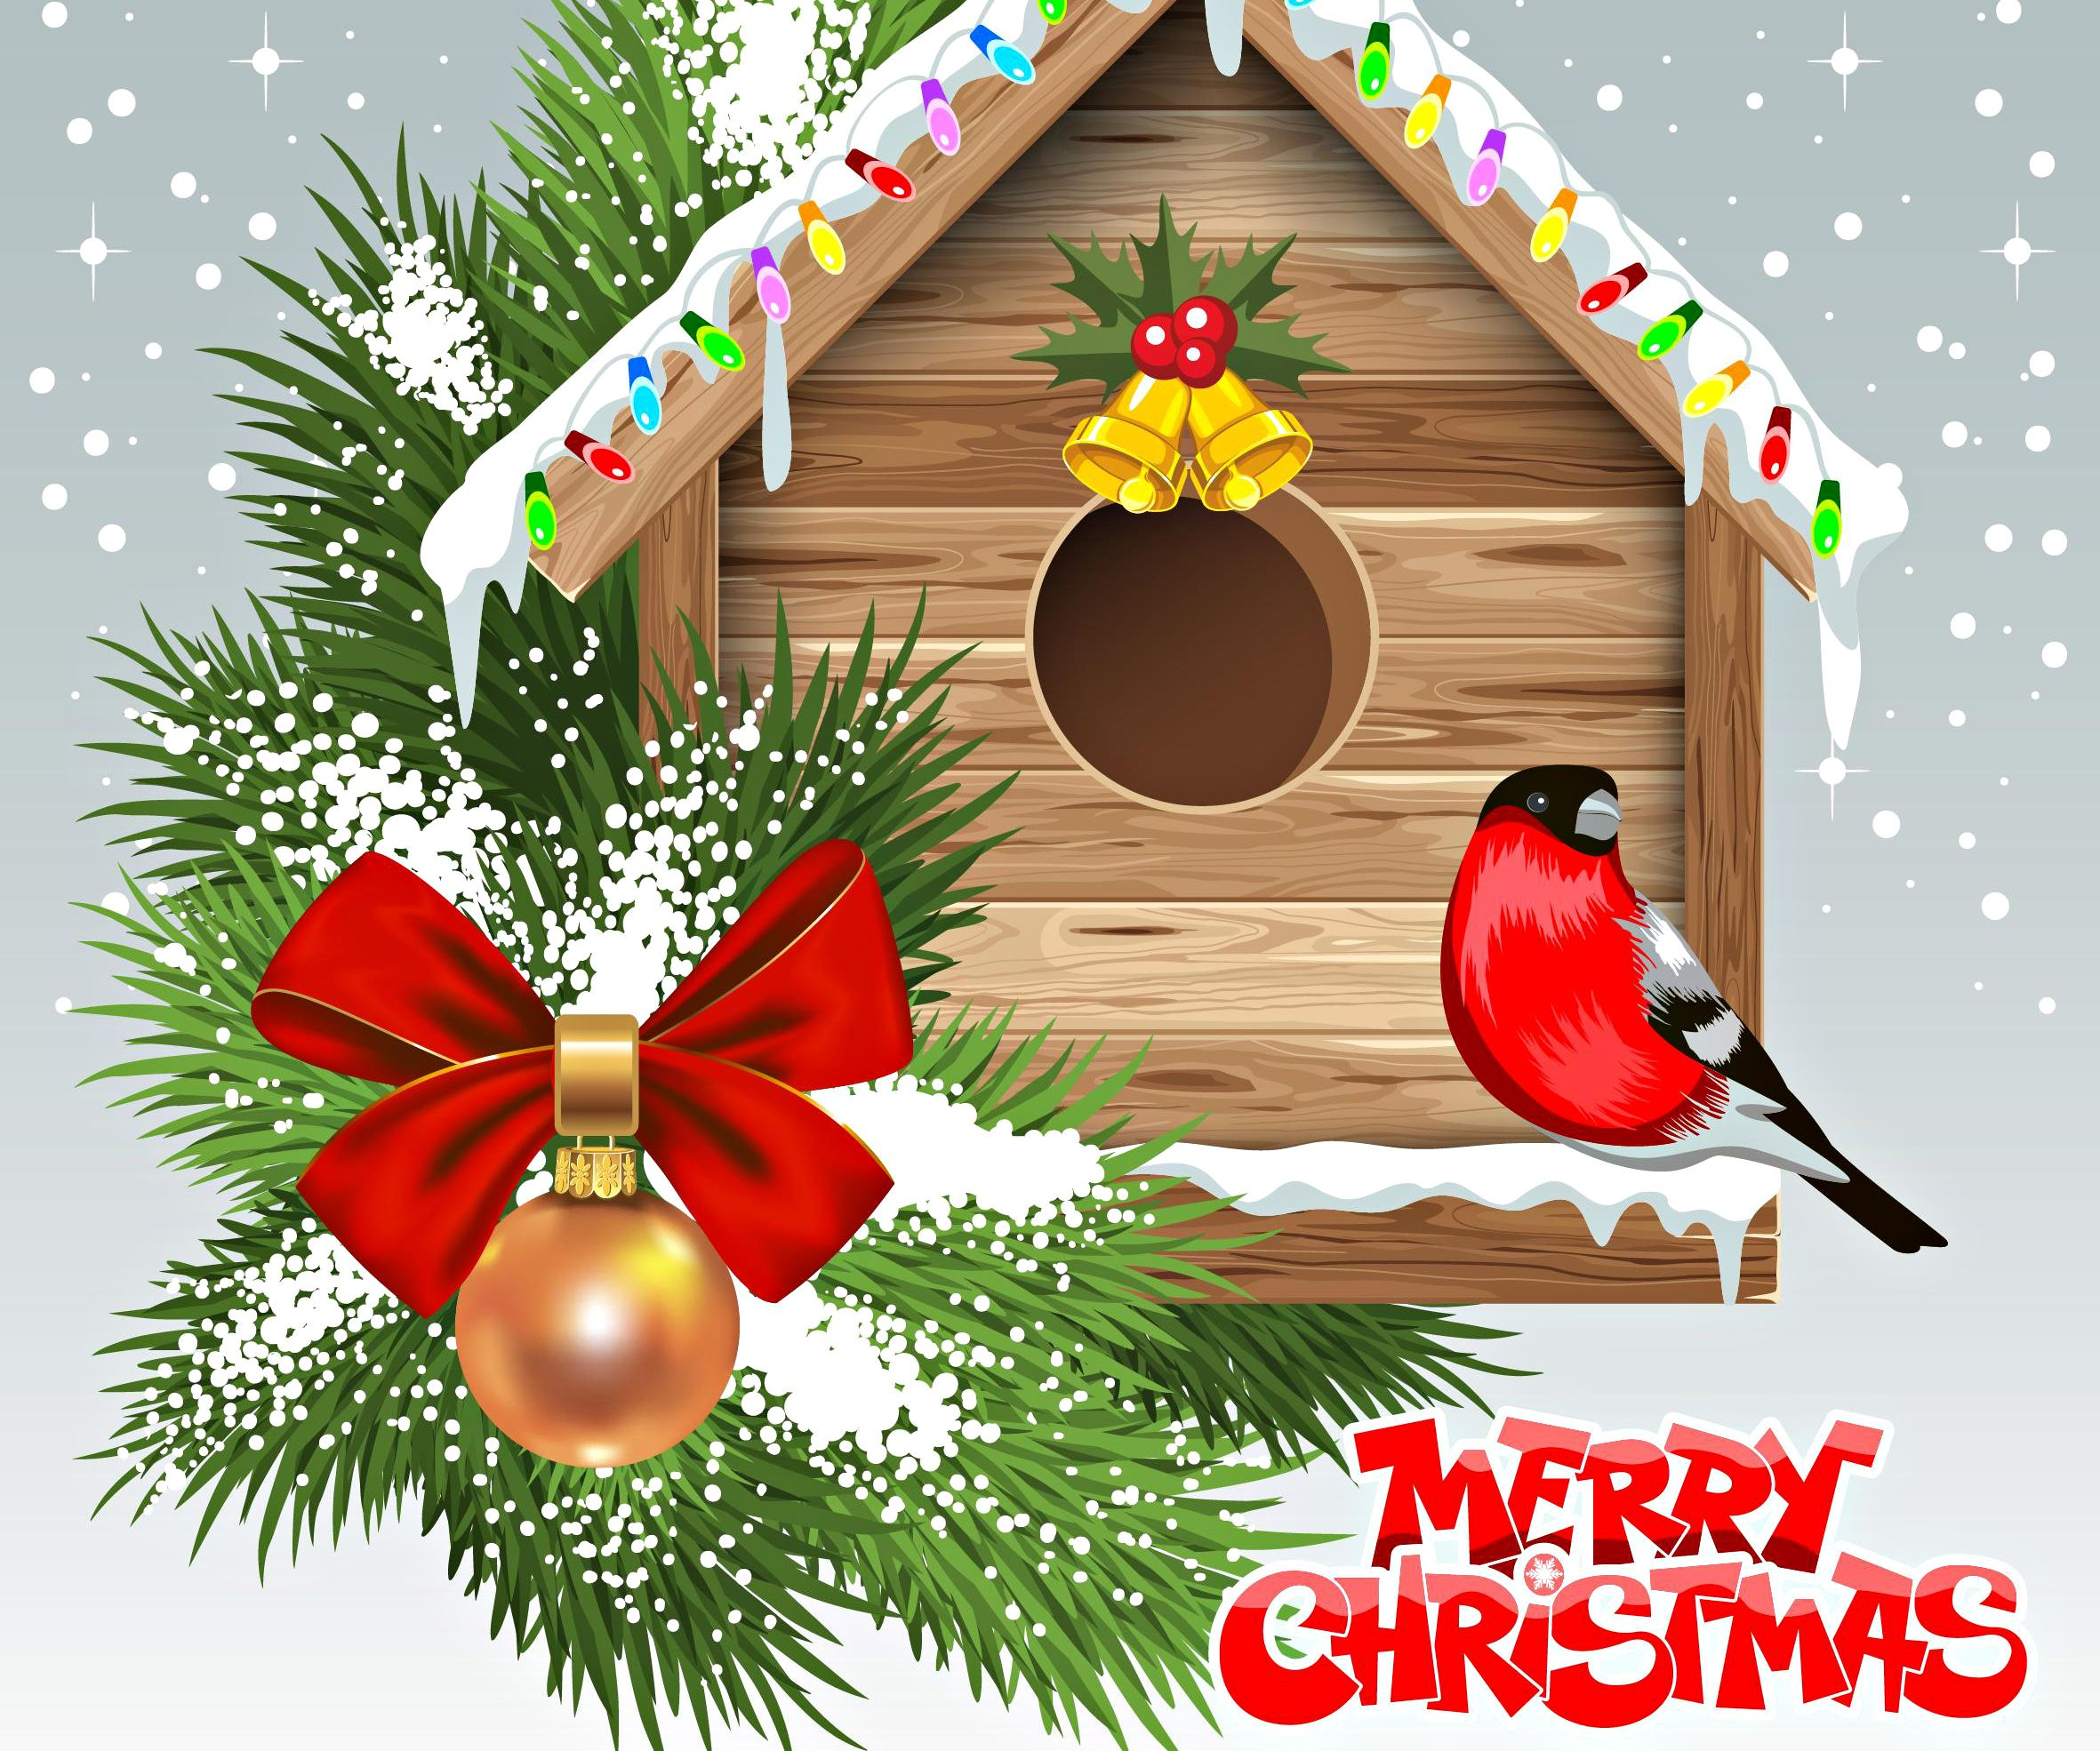 Happy Christmas and celebrate it with us on http://www.merry ...